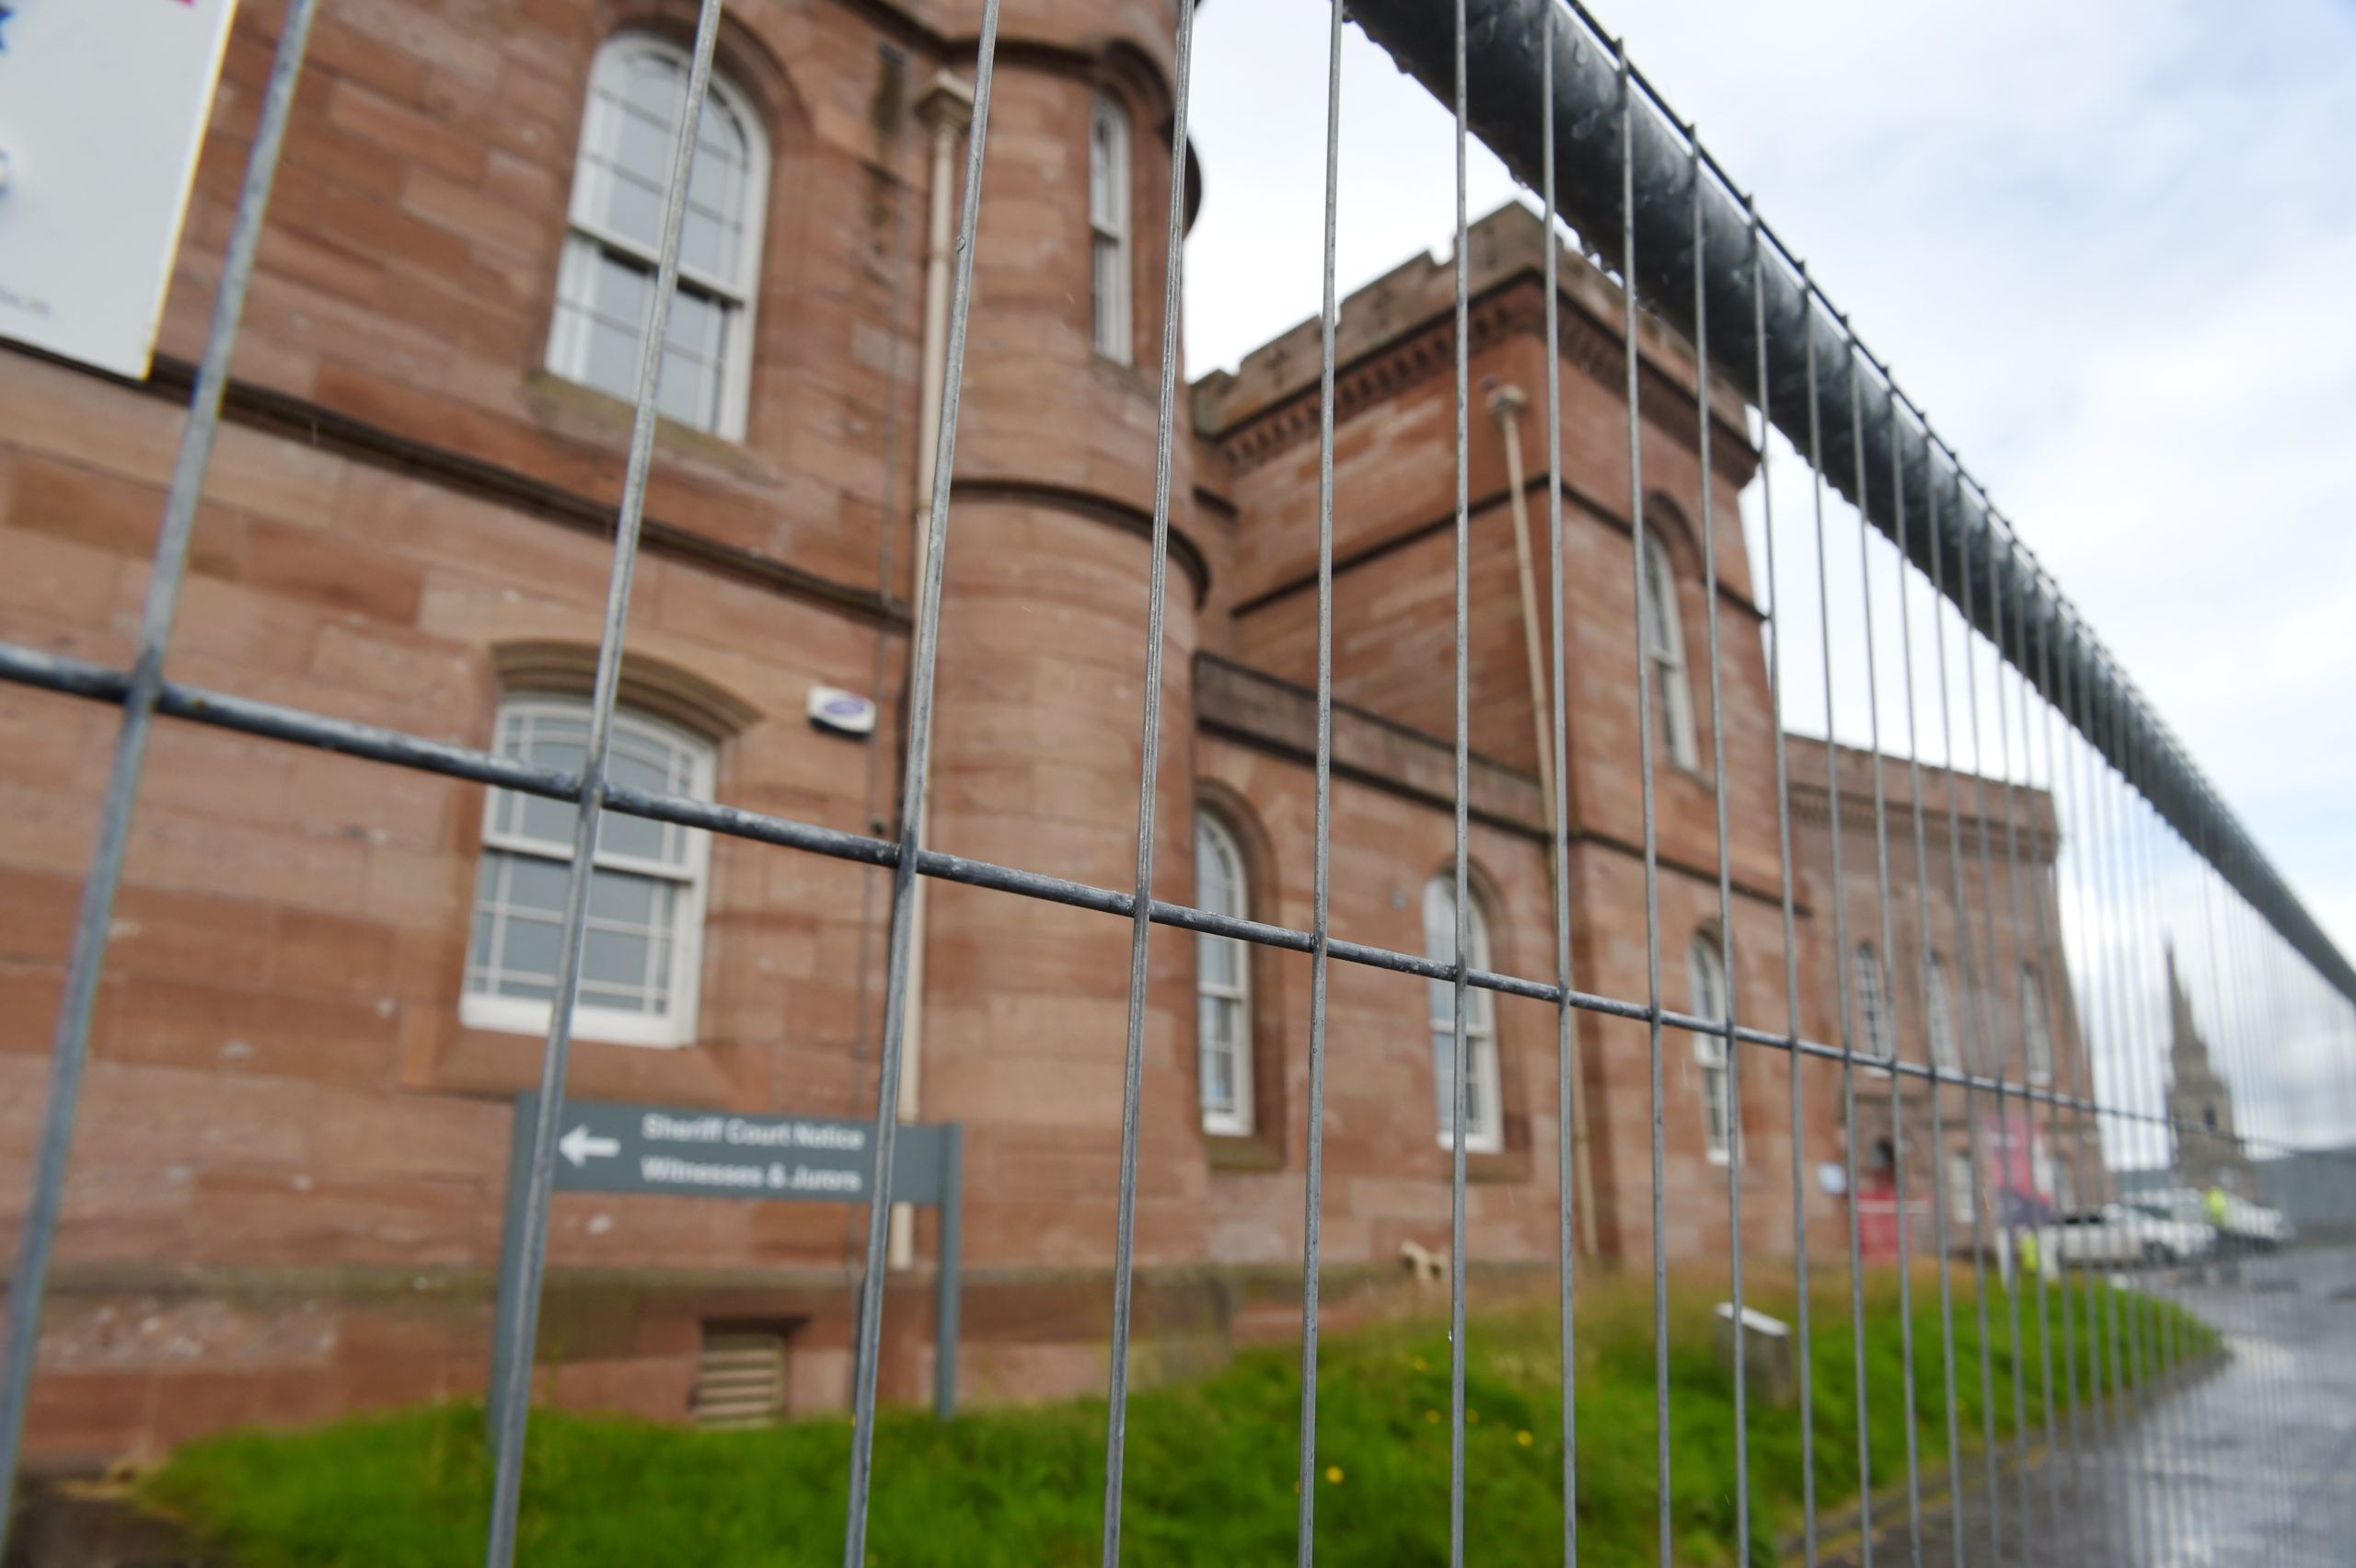 Inverness Castle is now surrounded by construction fencing. Picture by Sandy McCook.